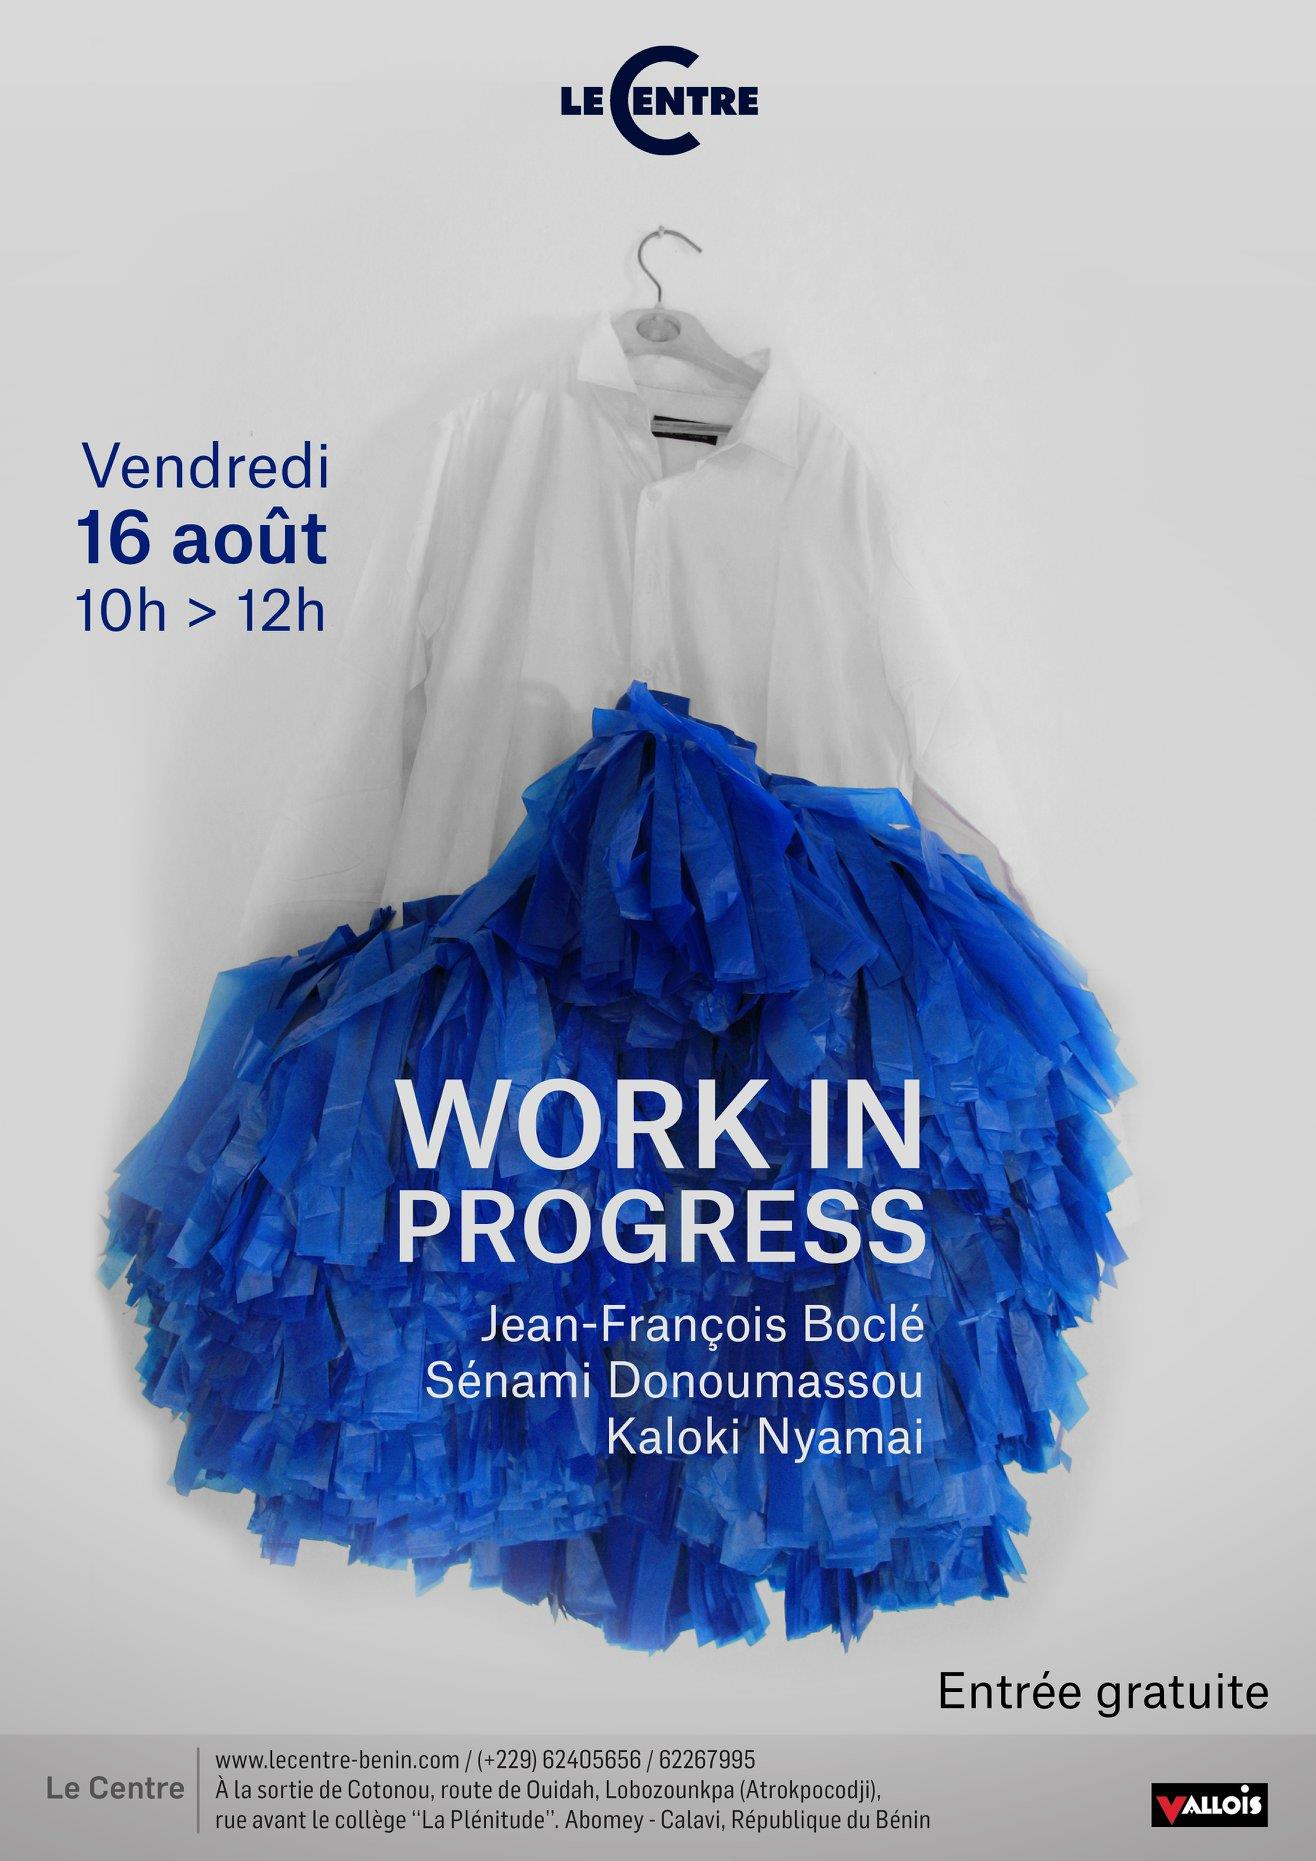 Work in progress, Résidence  Boclé, Donoumassou & Nyamai